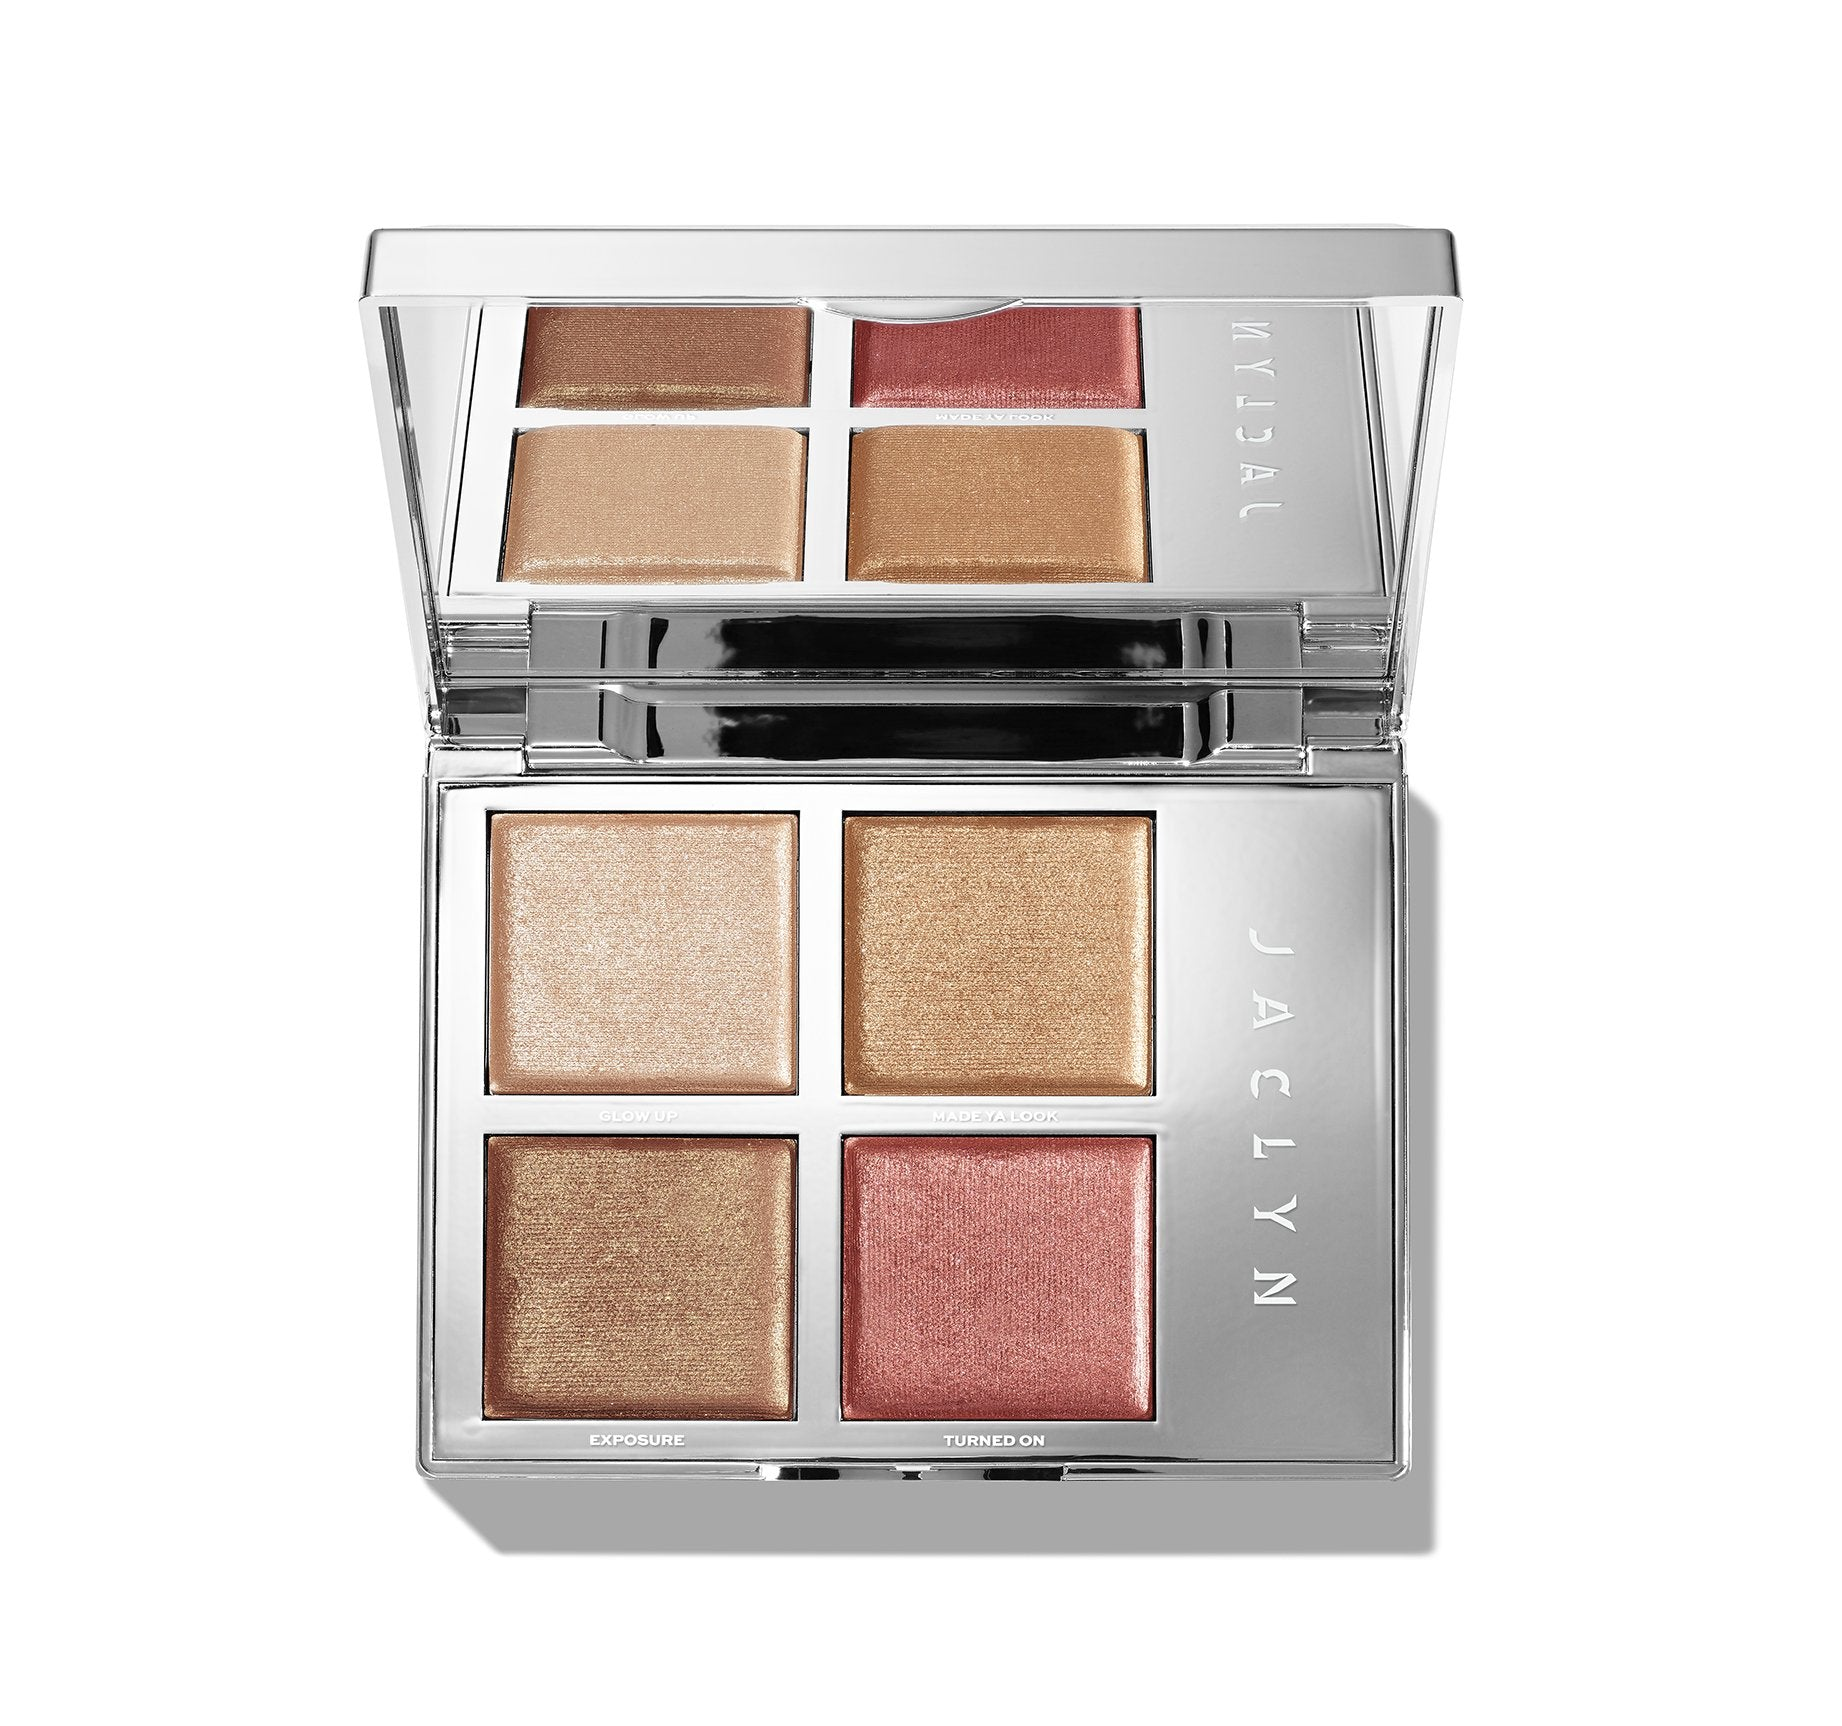 ACCENT LIGHT HIGHLIGHTER PALETTE - THE FLARE, view larger image